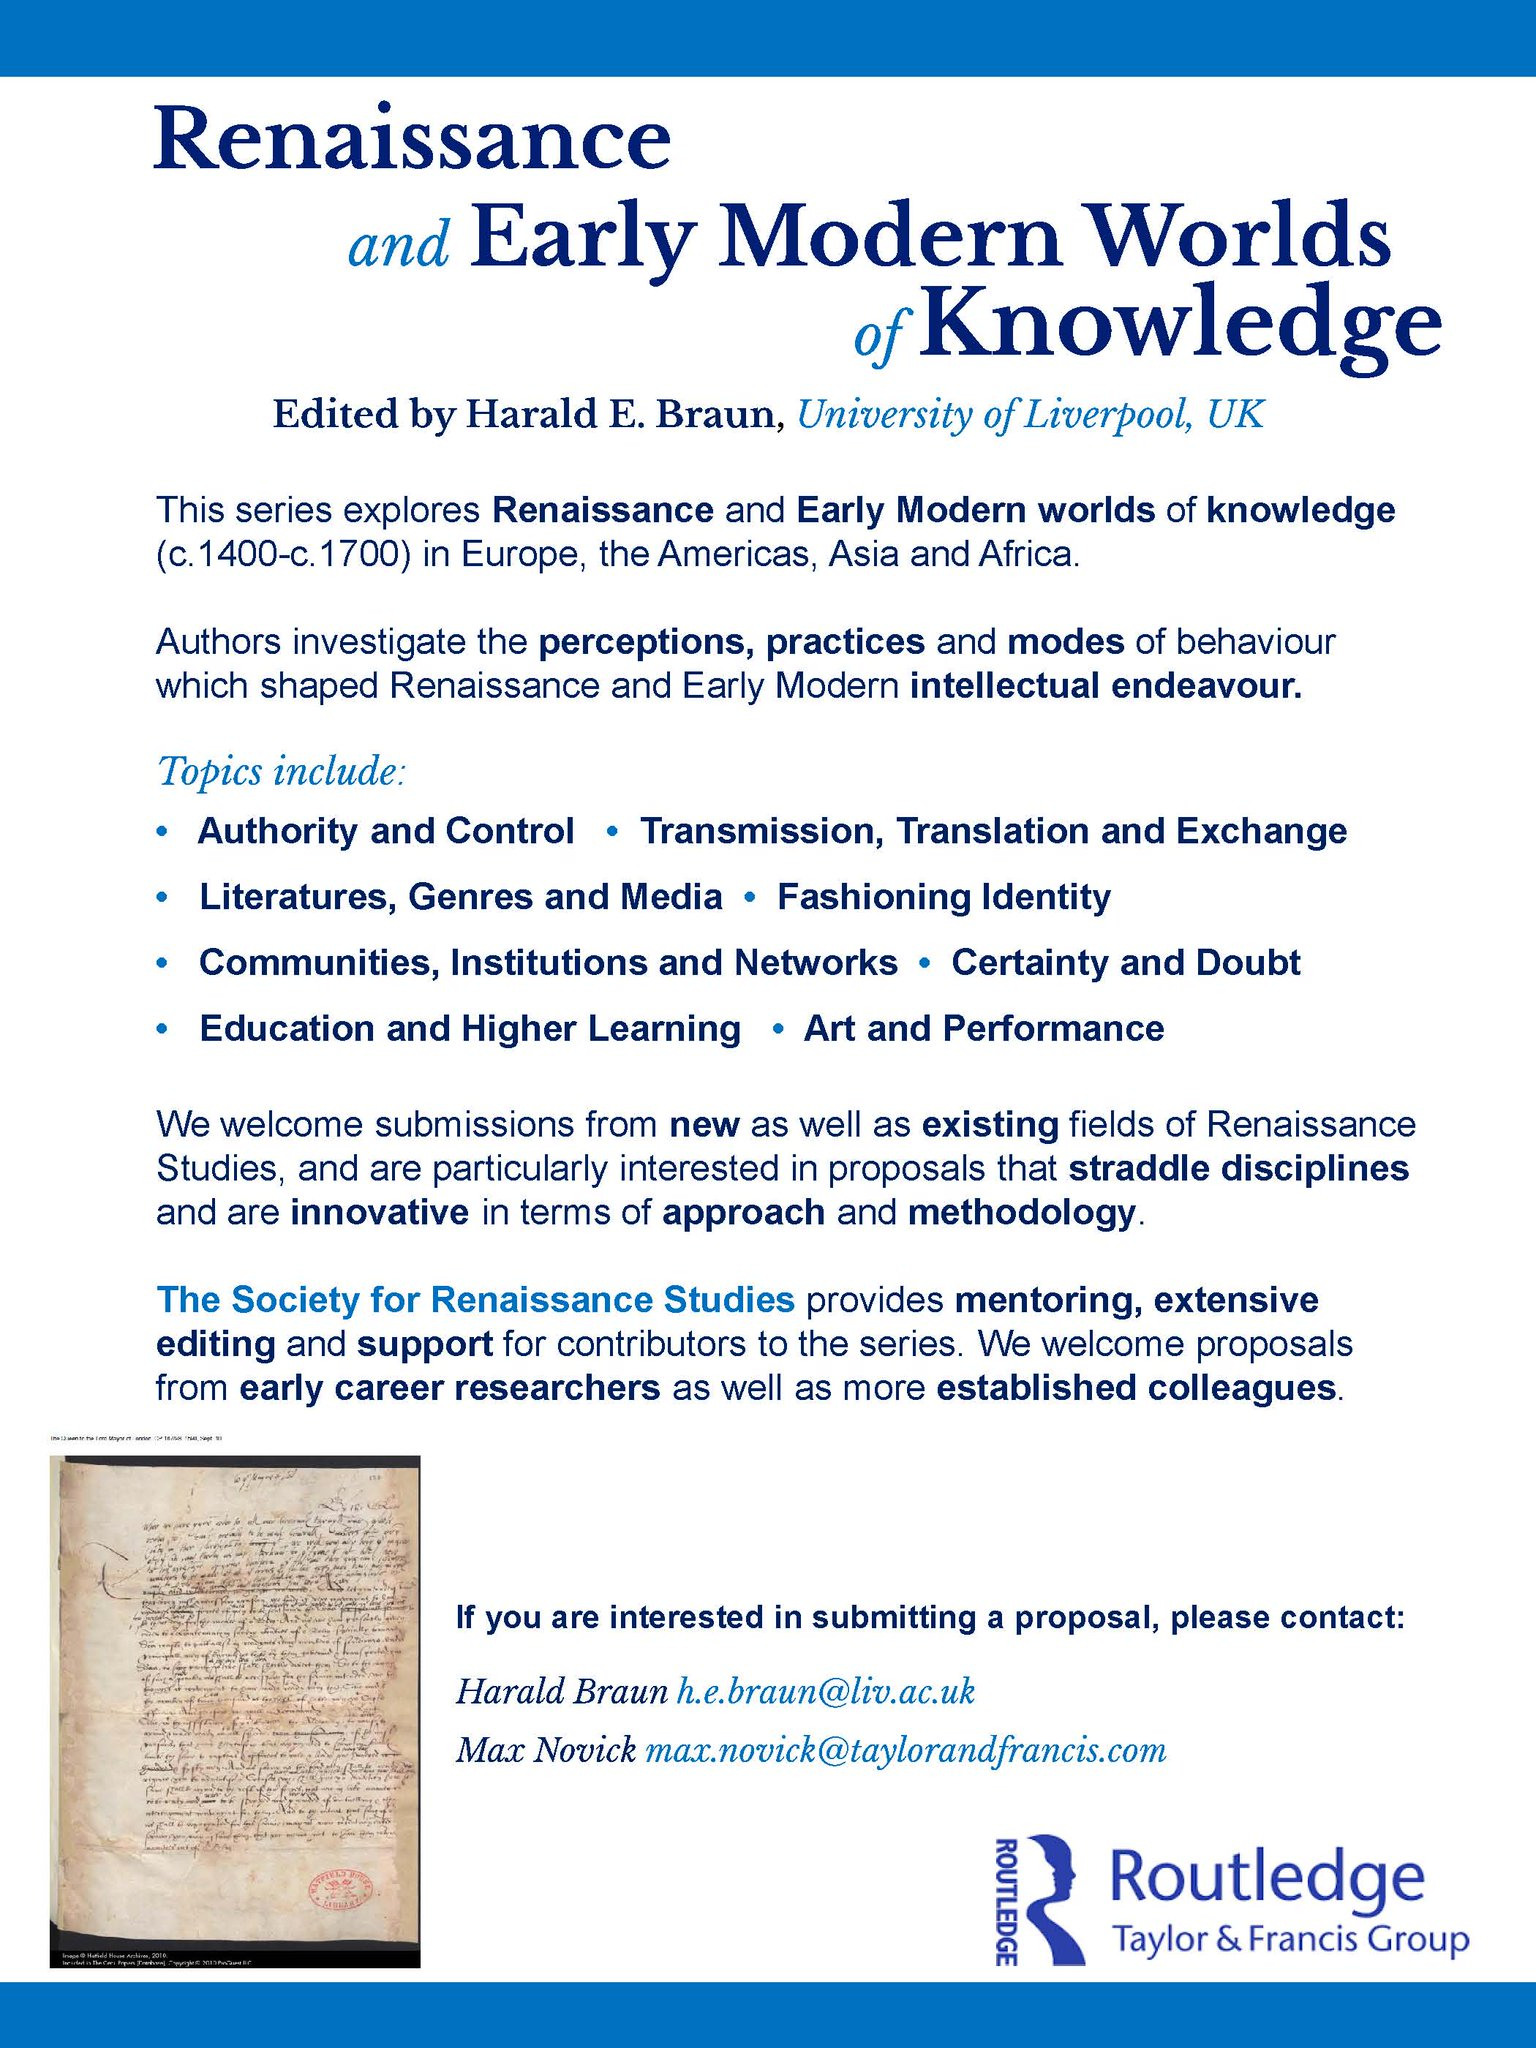 german history society essay prize The german history society (ghs), in association with the royal historical society (rhs), will award a prize of £500 to the winner of their annual essay competition in addition, the essay will be considered for publication in german history the prize will be presented to the winner at the annual .